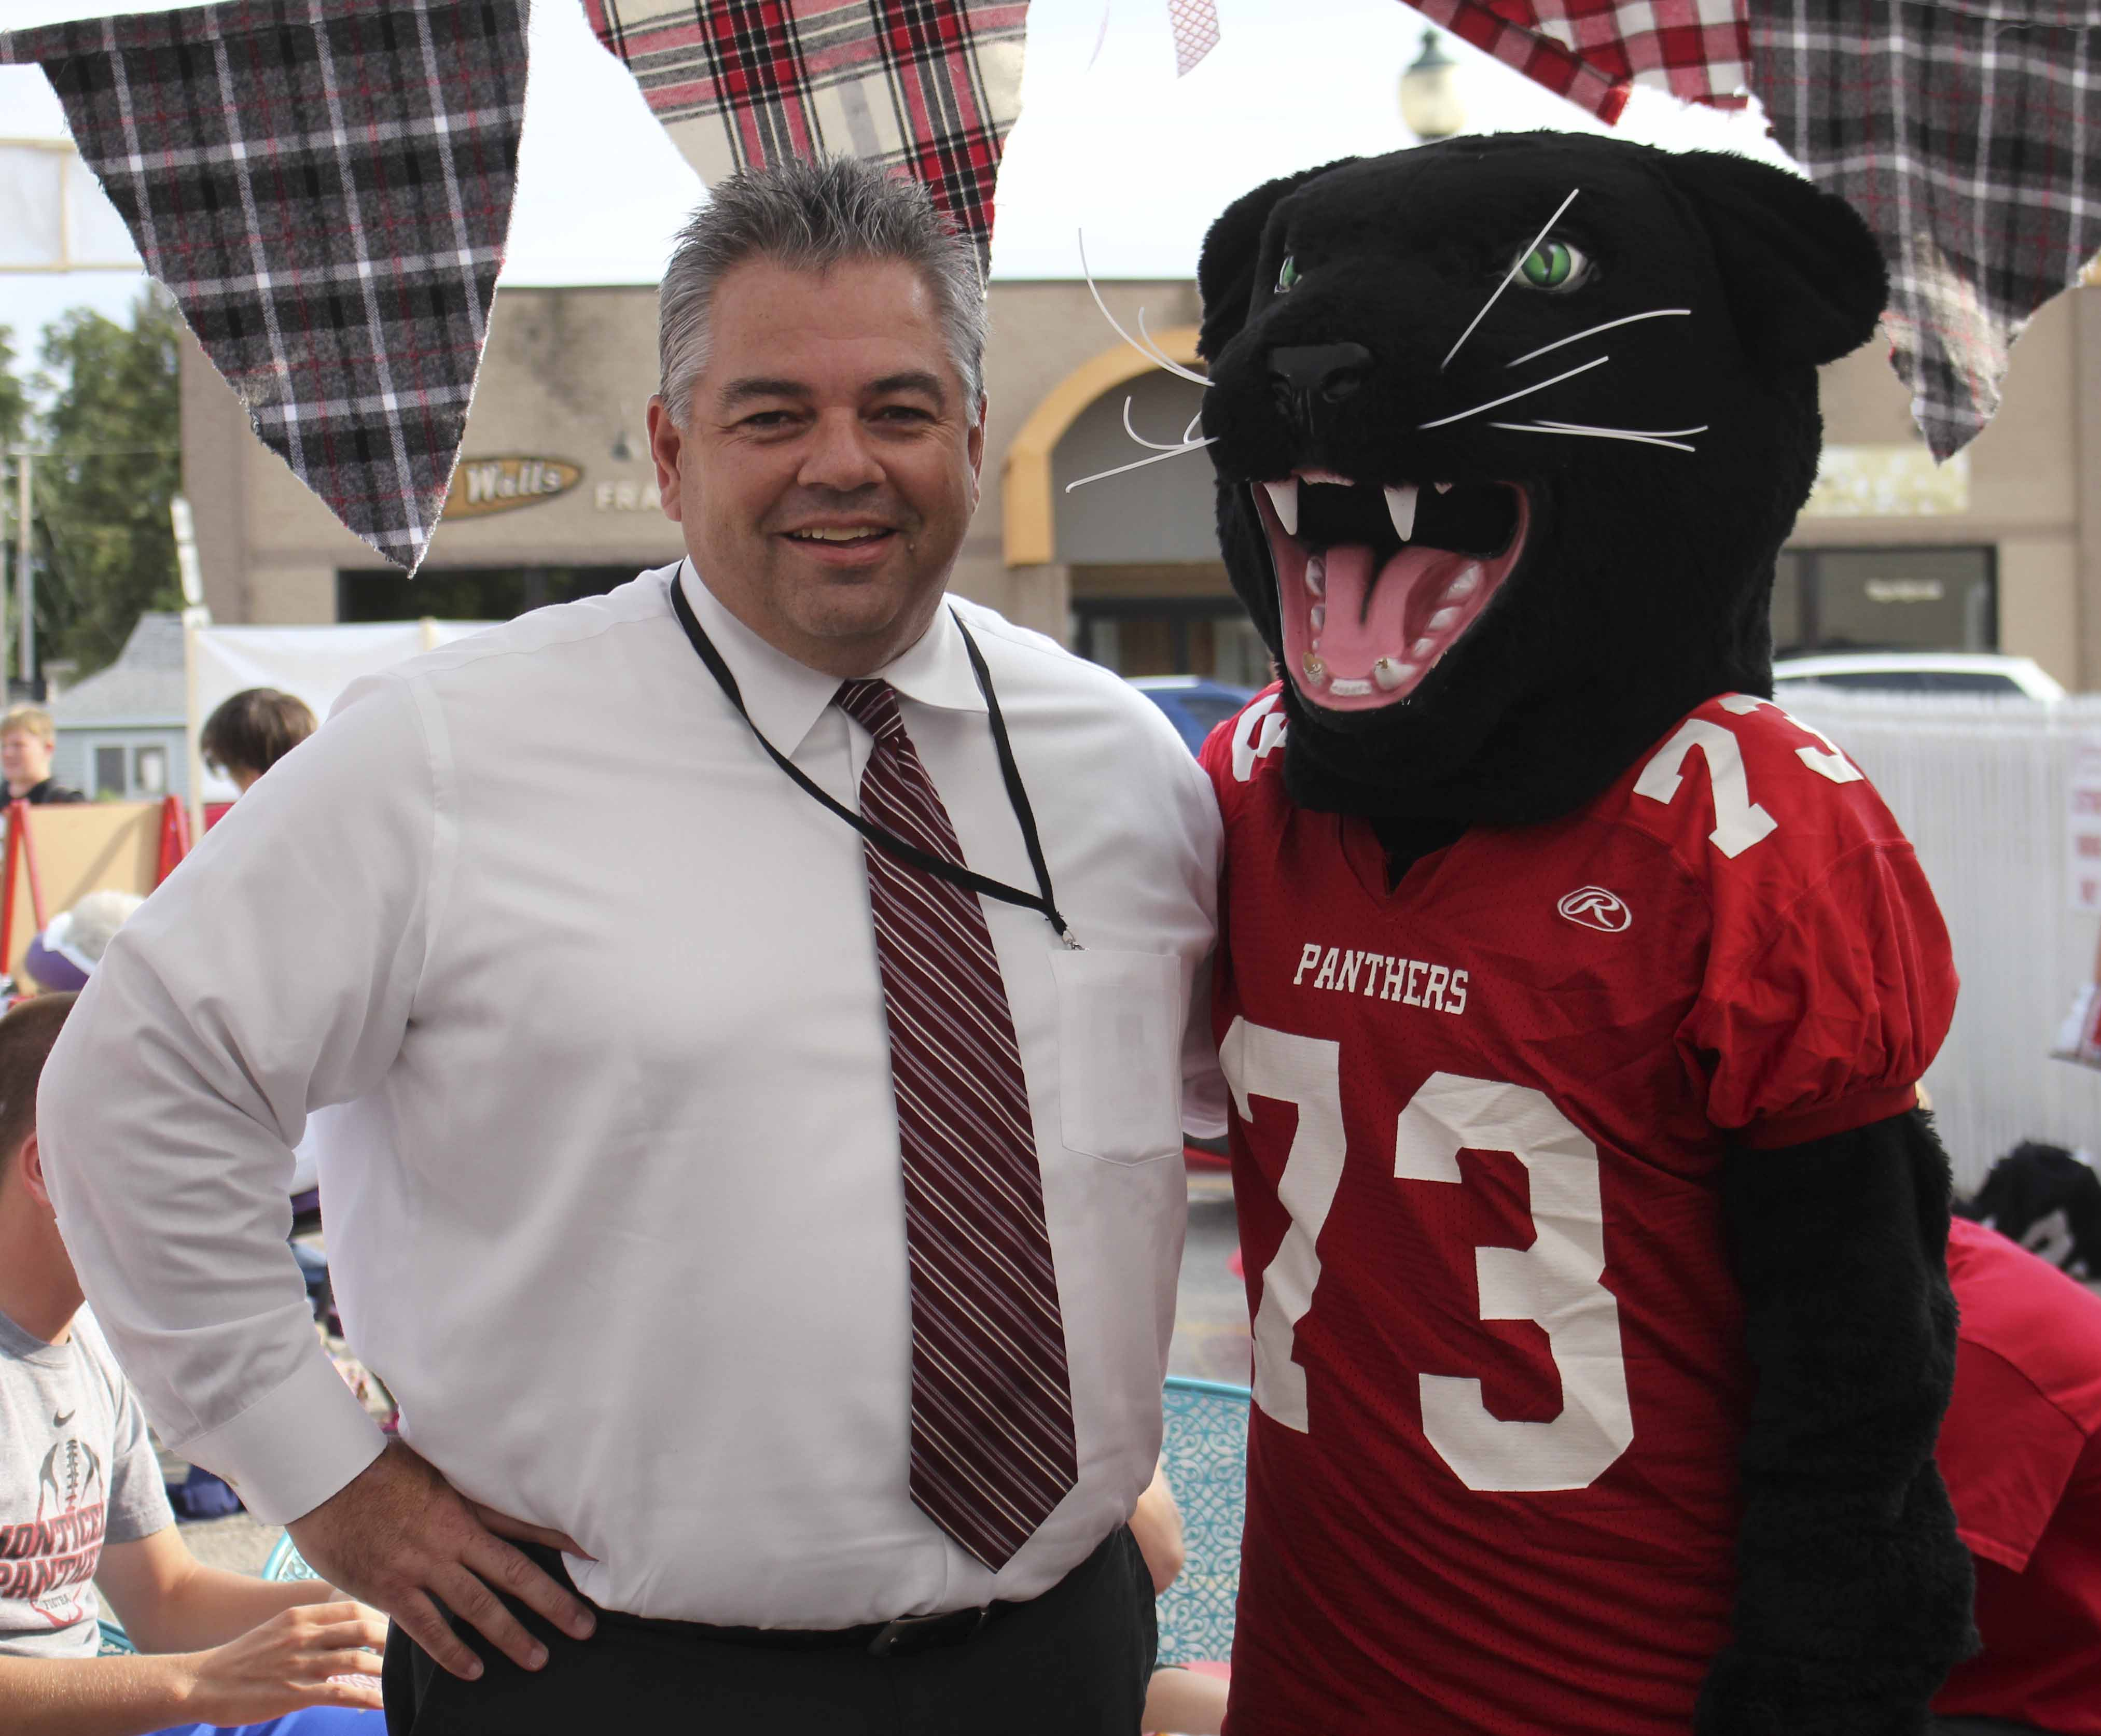 Superintendent Brian Jaeger poses with the Panther mascot during the Tailgate Party.